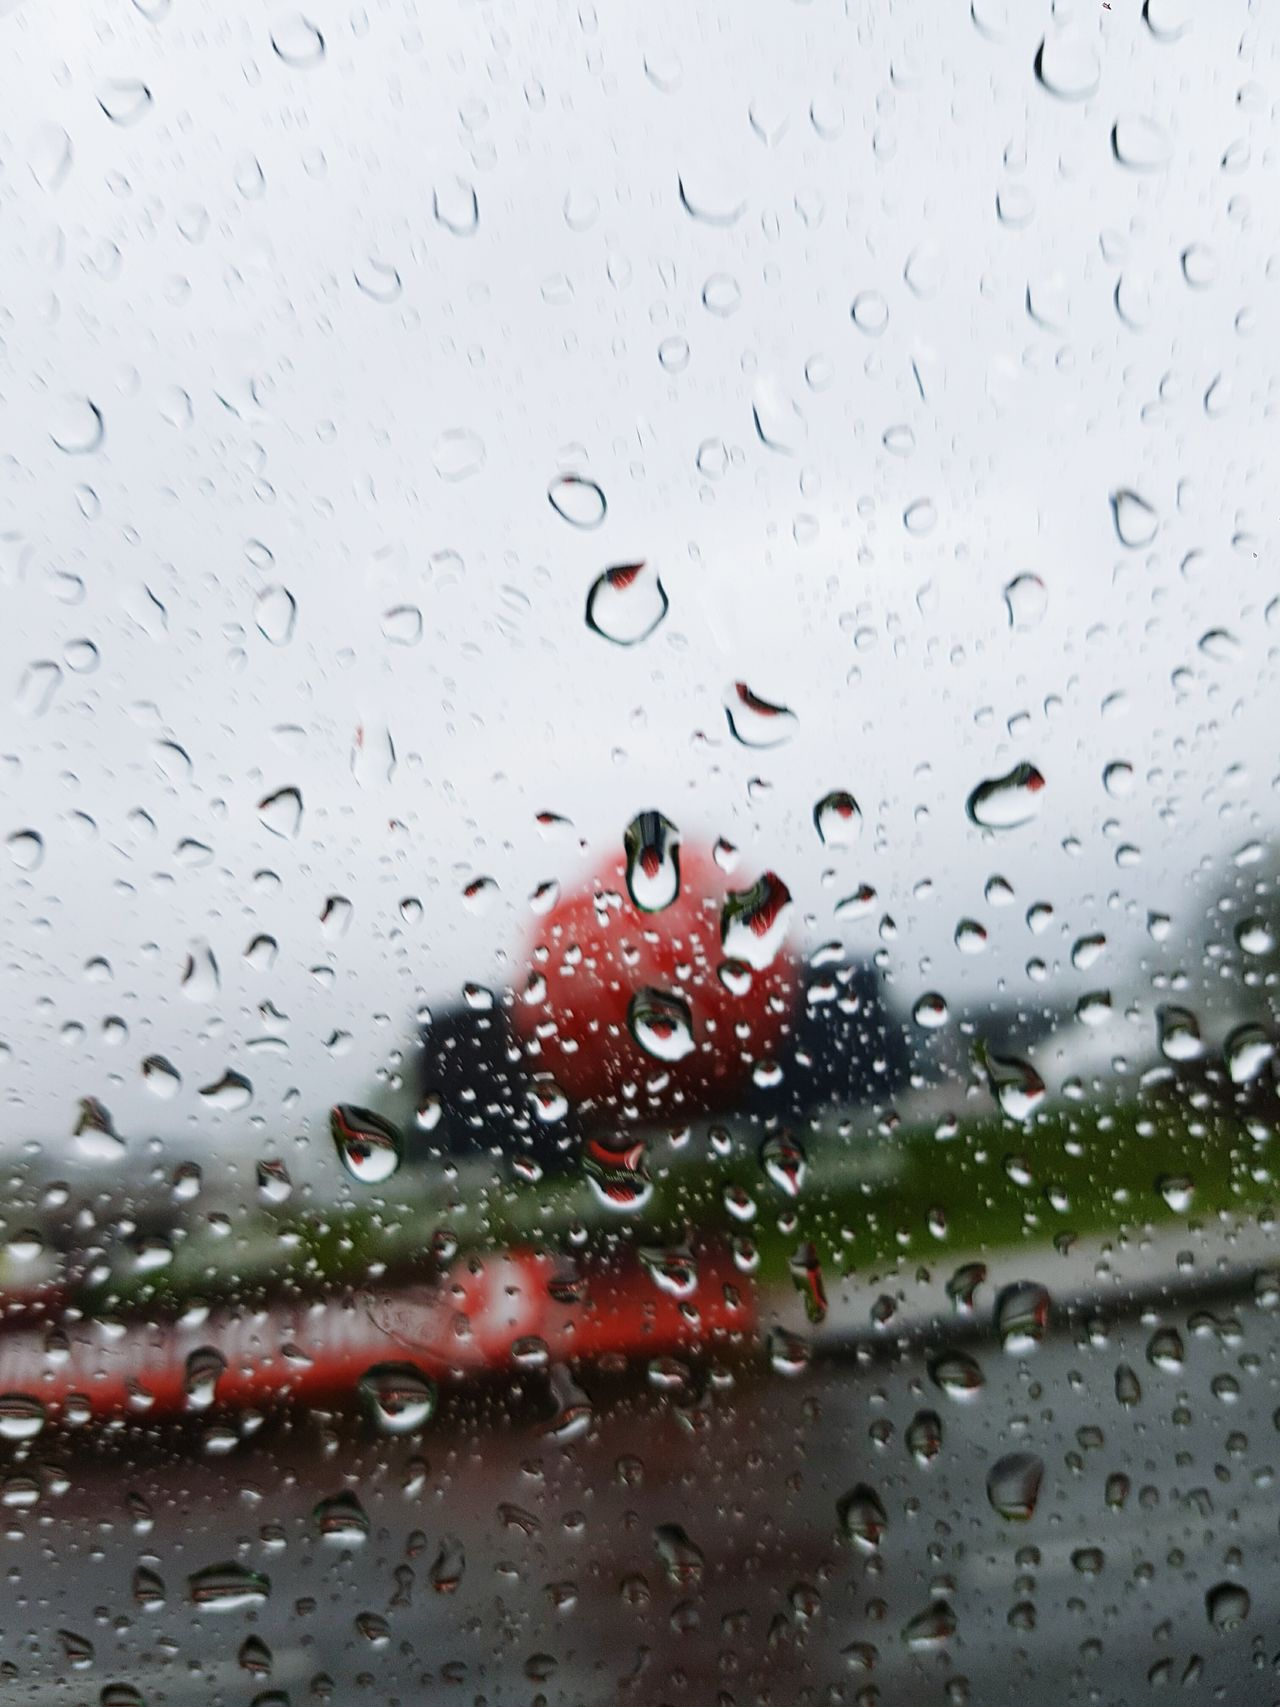 Turkishairlines Wet Rain Car Transparent Transportation Window Drop Water Land Vehicle Day Vehicle Interior Rainy Season One Person Sky Close-up Outdoors Nature Peopleturkishairlines Reflection Rain Drops Backgrounds